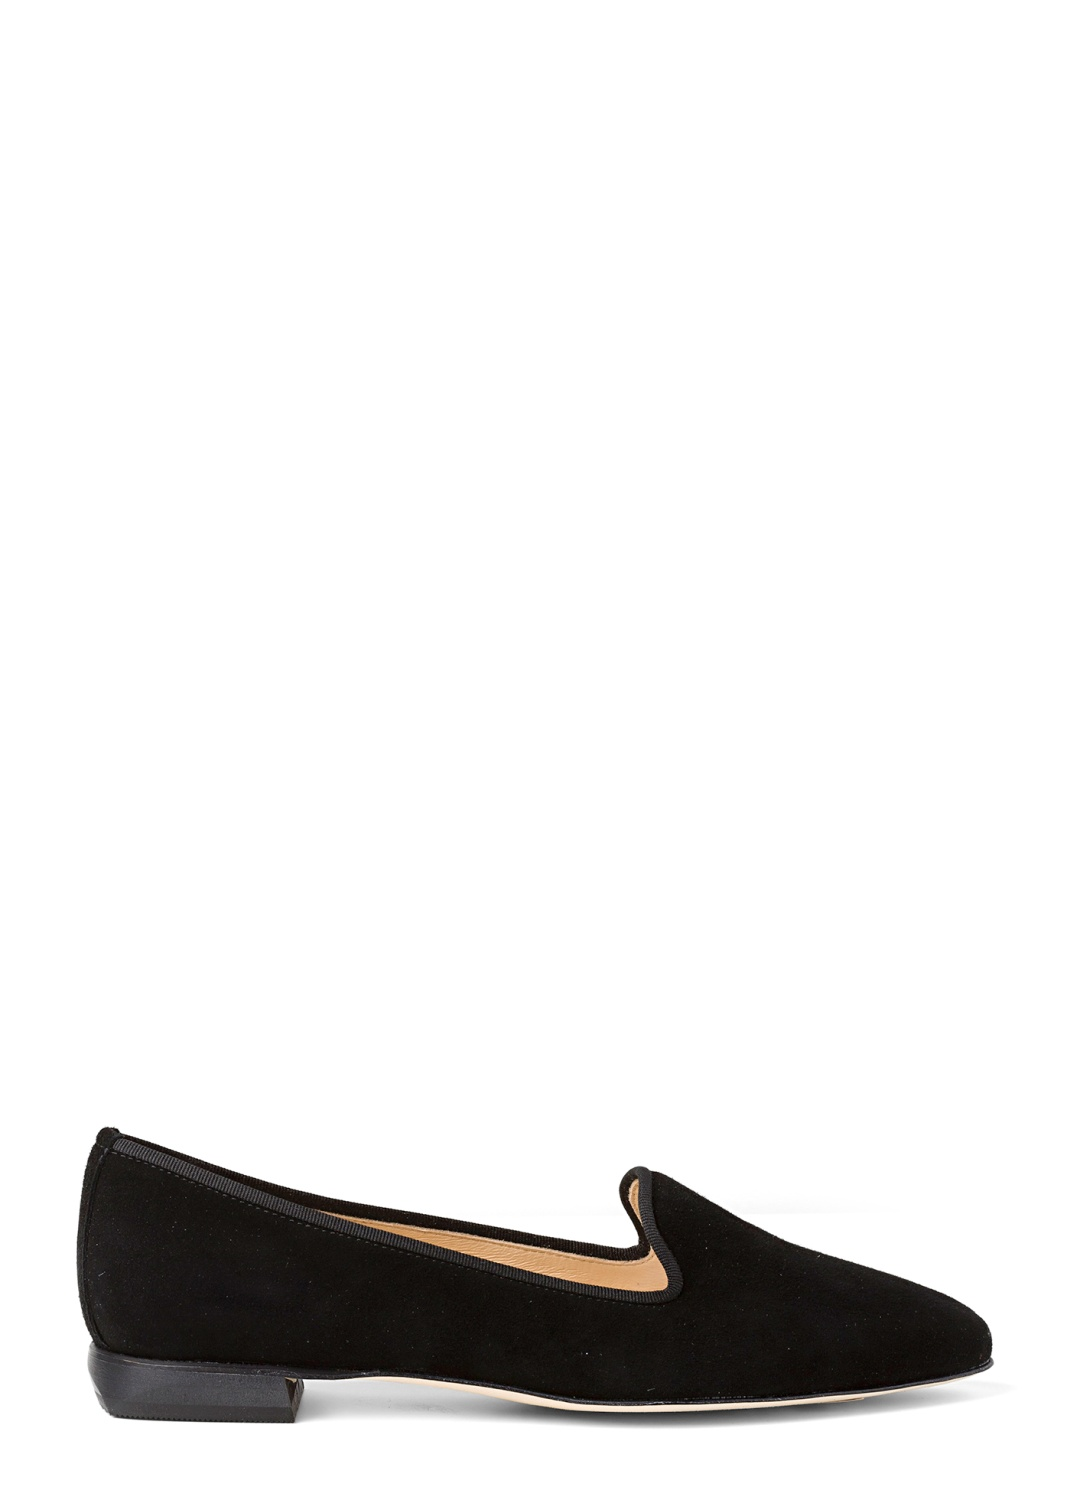 22_Pointy Loafer Suede image number 0